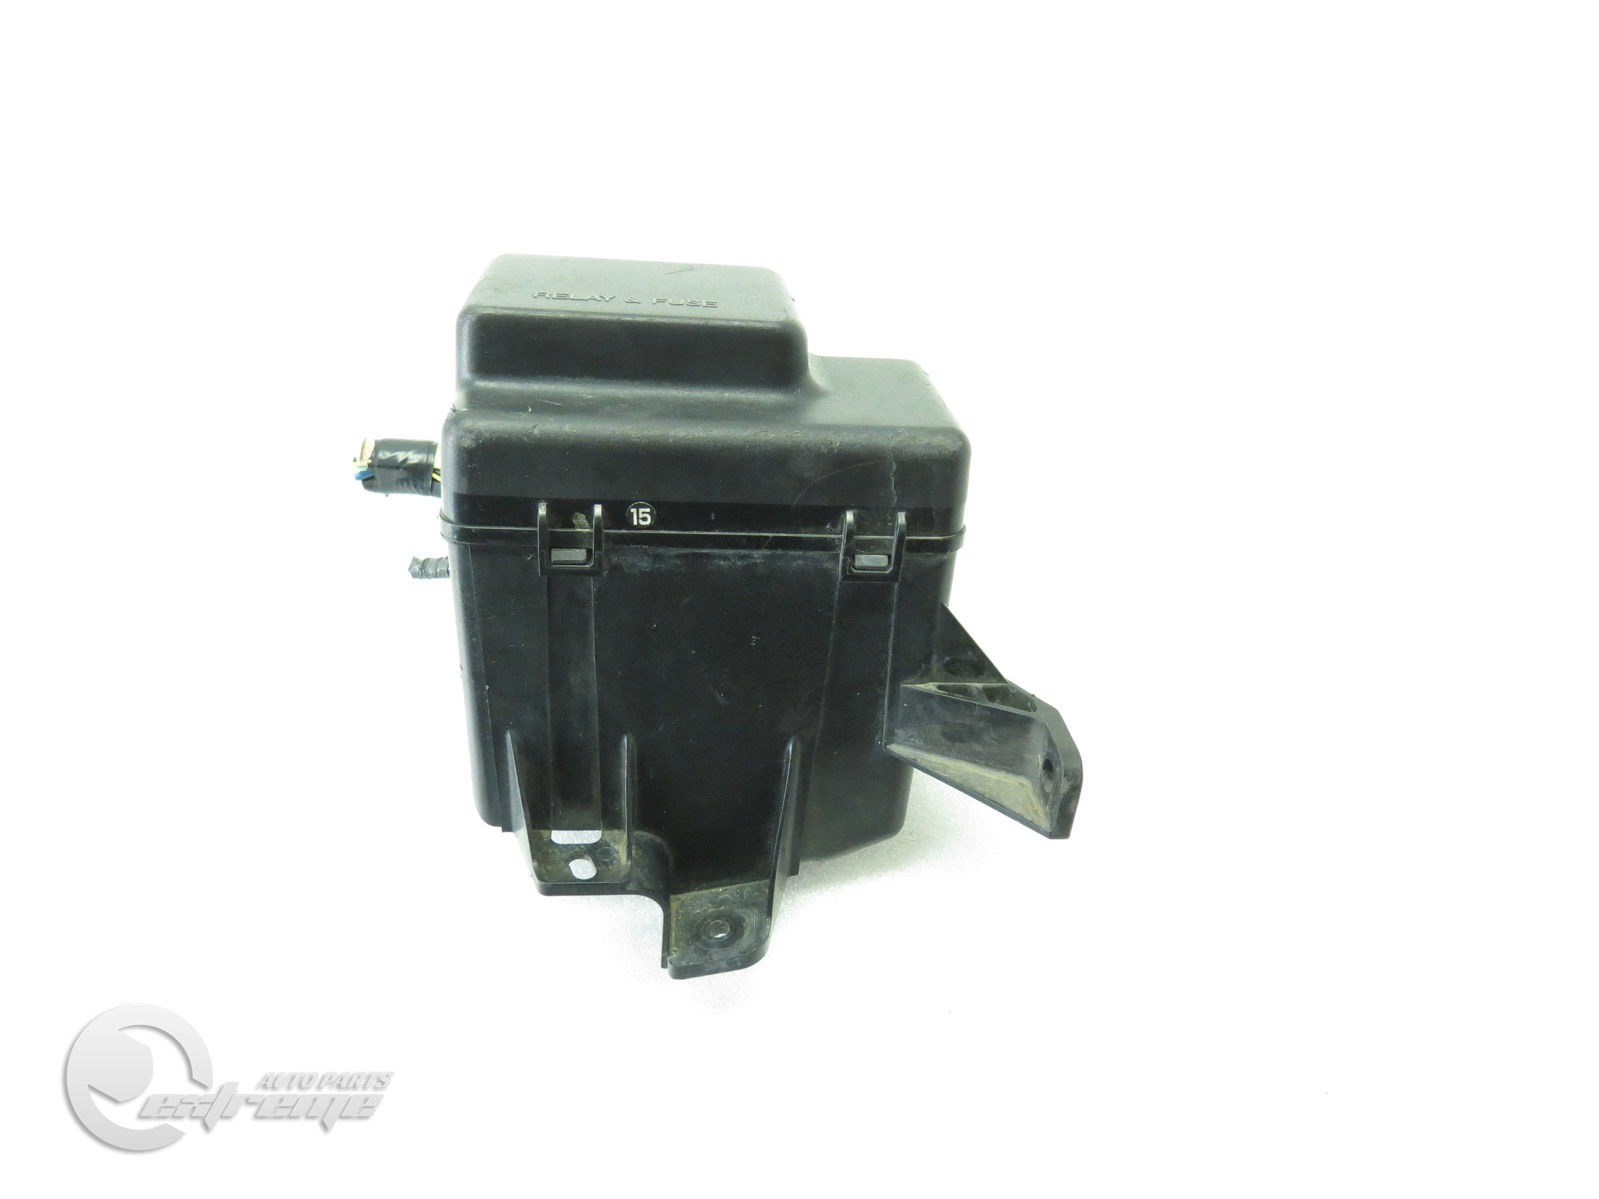 hight resolution of scion tc 05 07 engine bay relay fuse box under hood 82730 21060 extreme auto parts